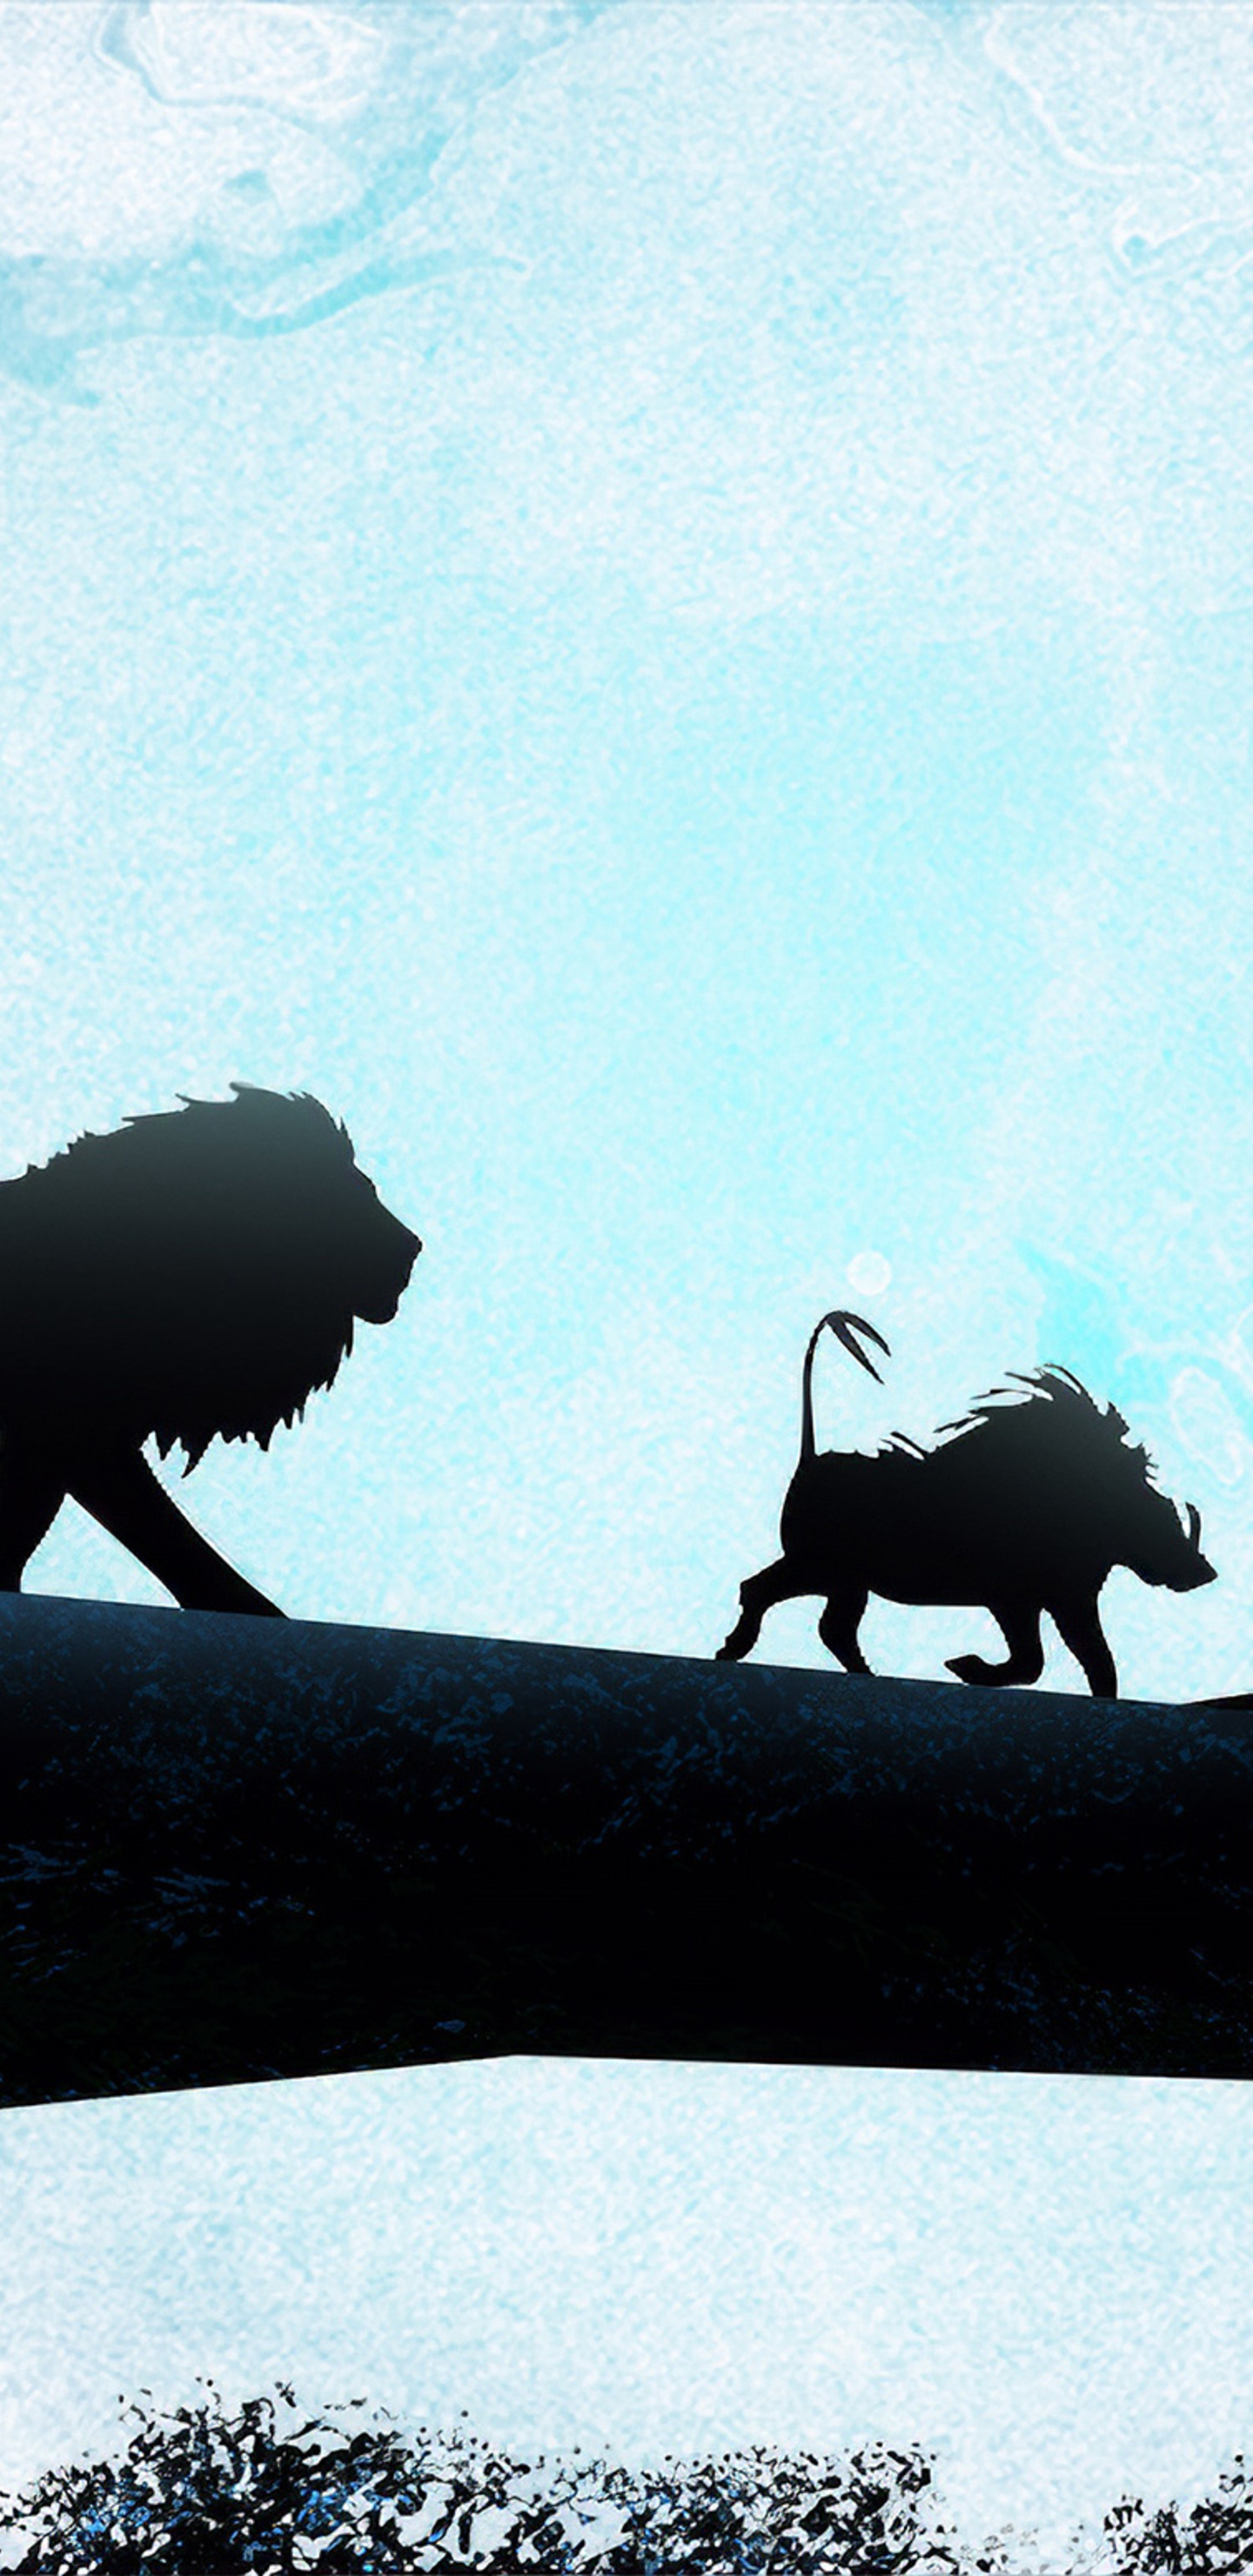 1440x2960 Hakuna Matata 4k Samsung Galaxy Note 9 8 S9 S8 S8 Qhd Hd 4k Wallpapers Images Backgrounds Photos And Pictures